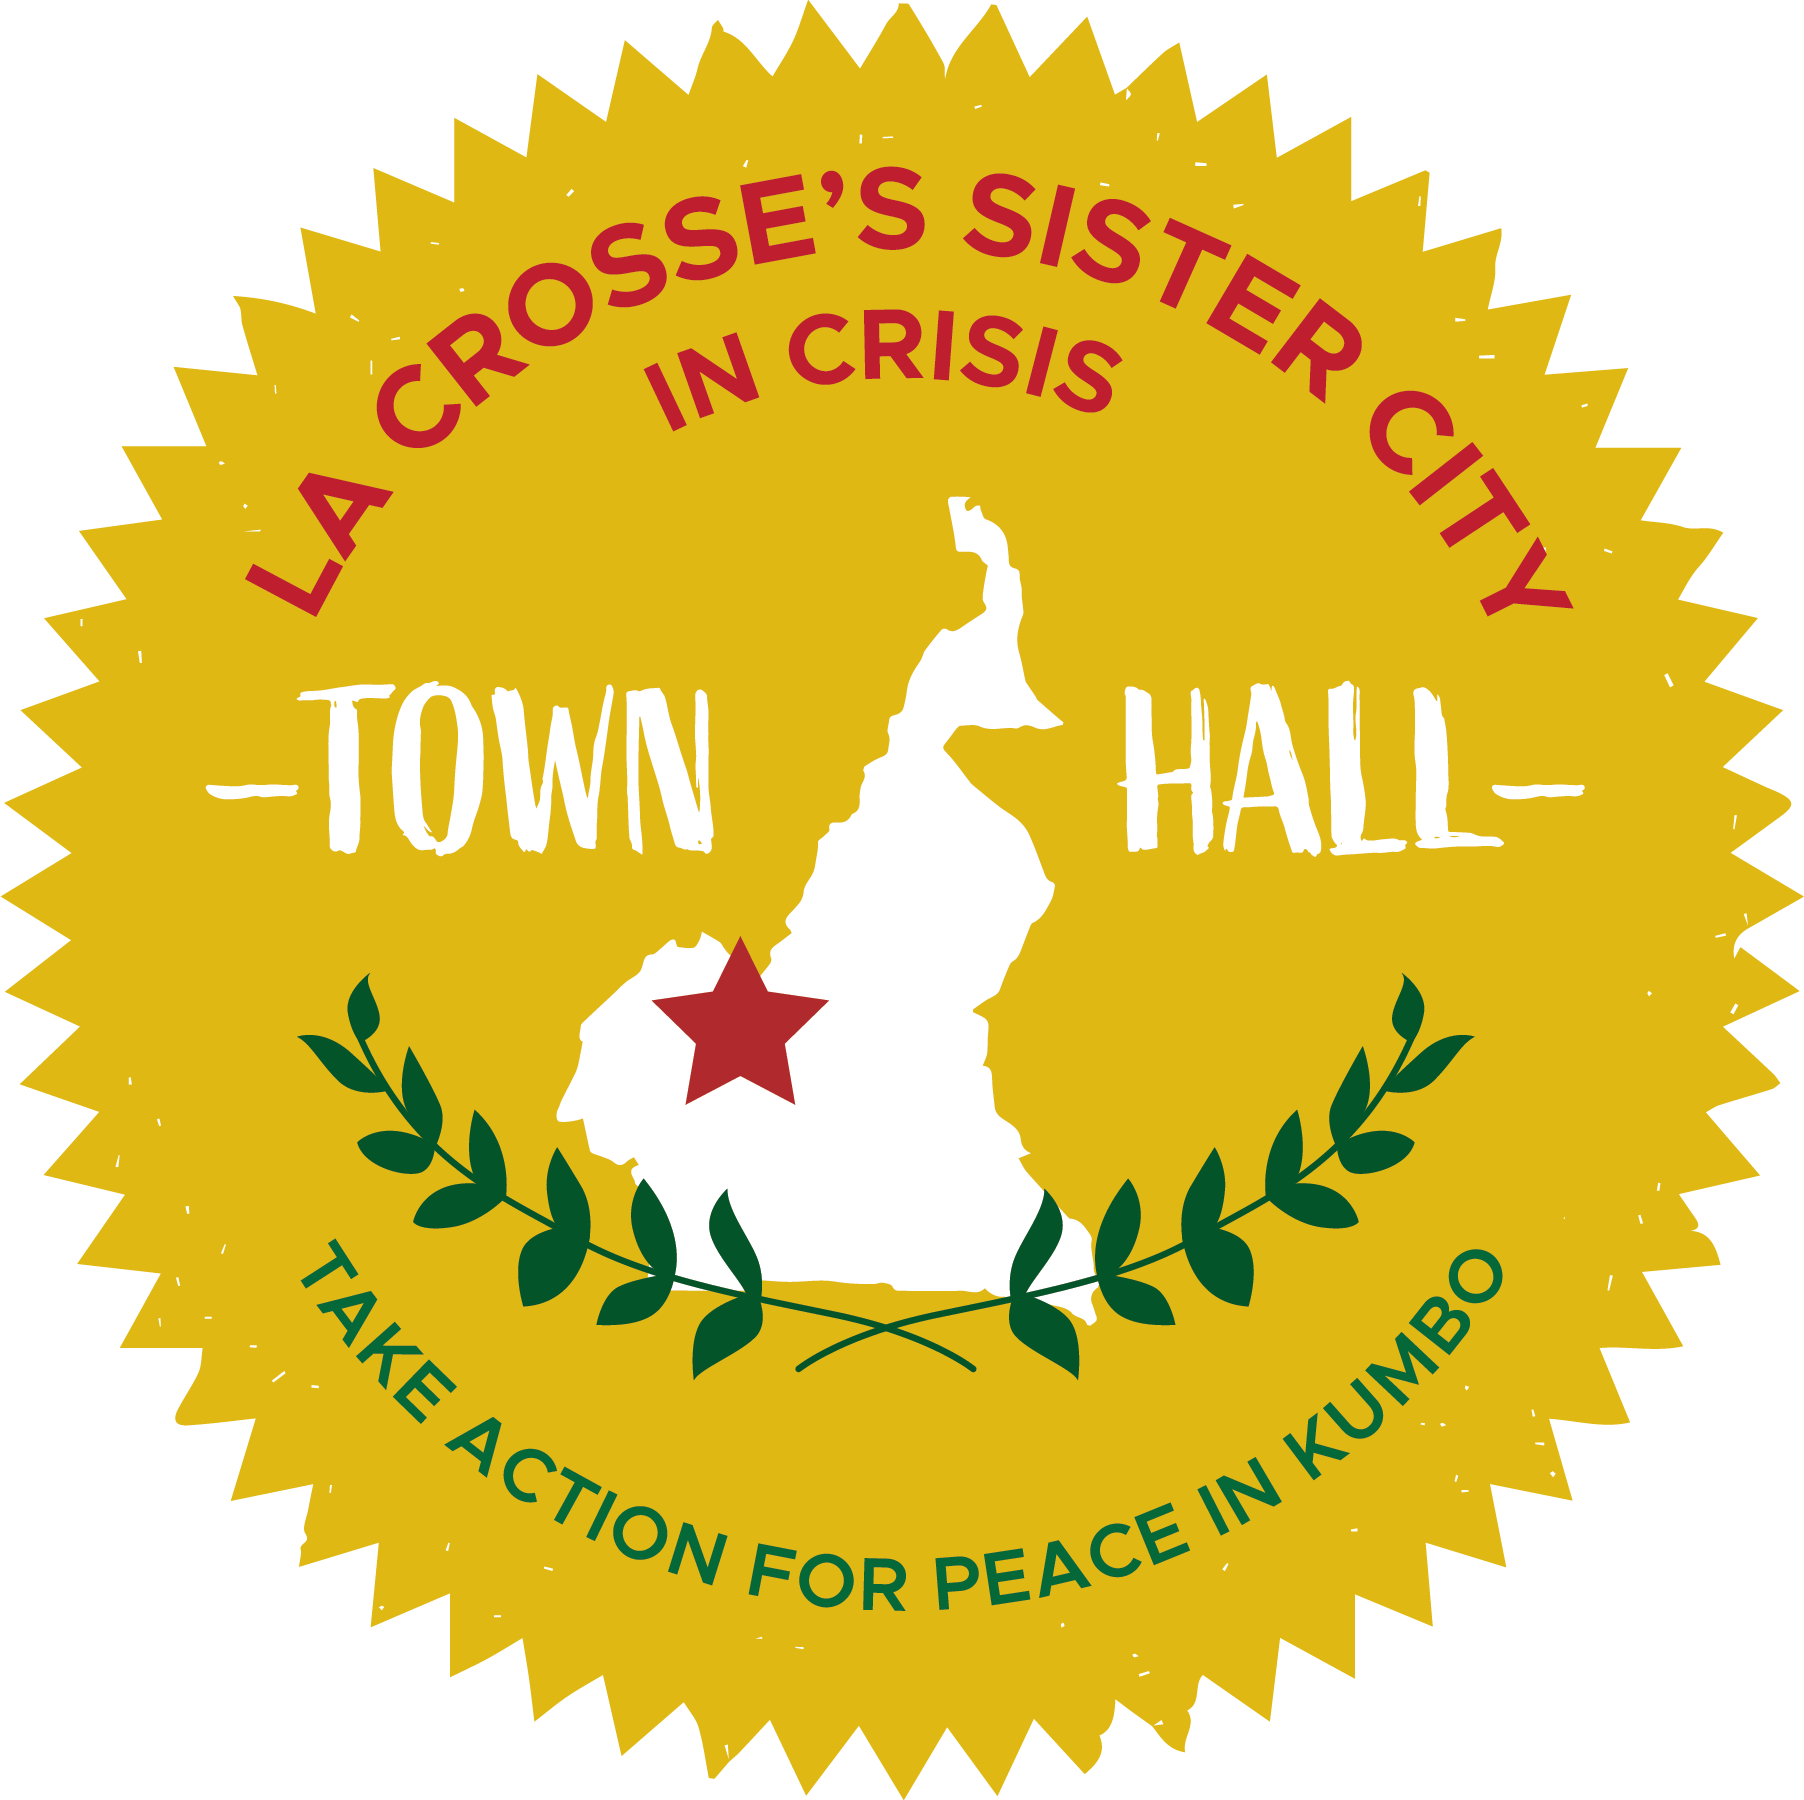 La Crosse Sister City in Crisis event graphic